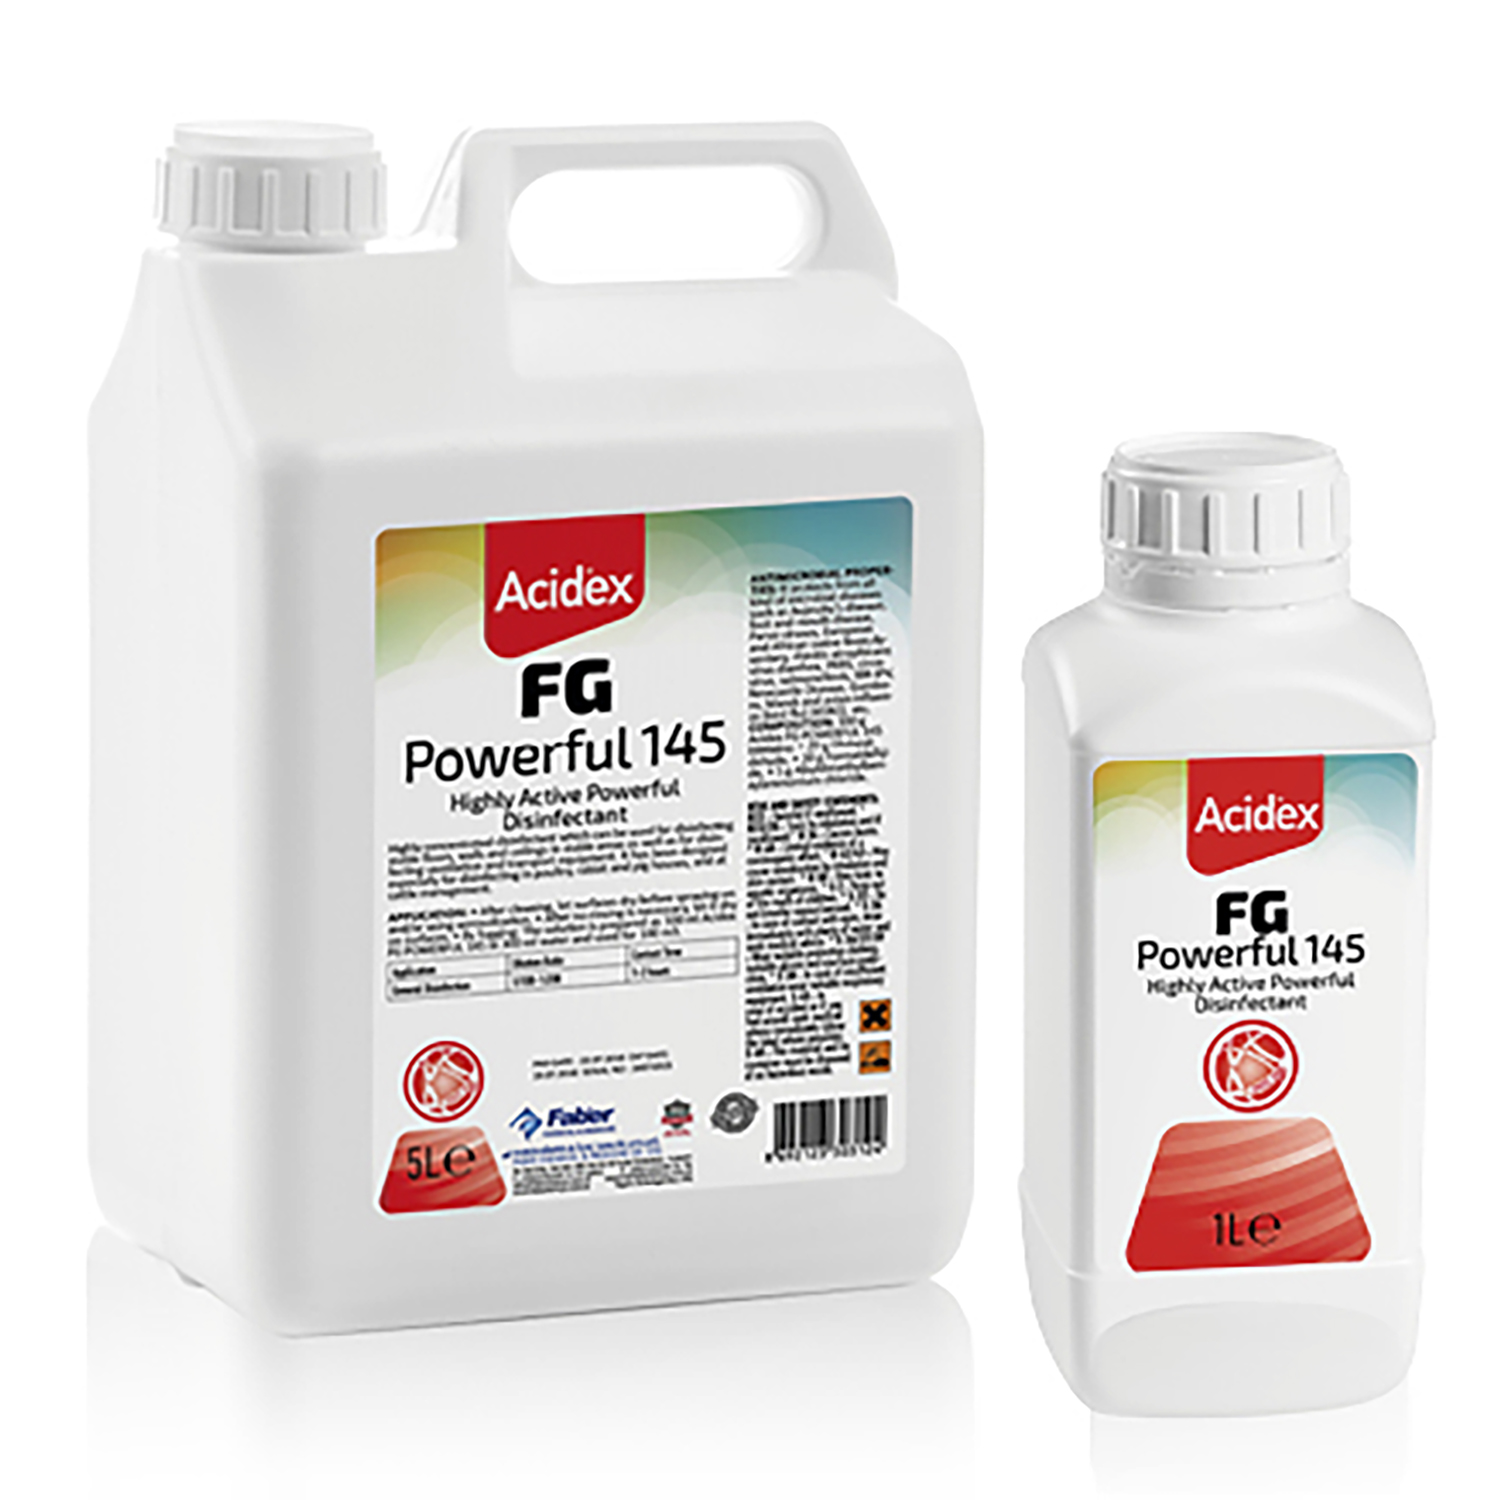 Acidex FG Powerful 145